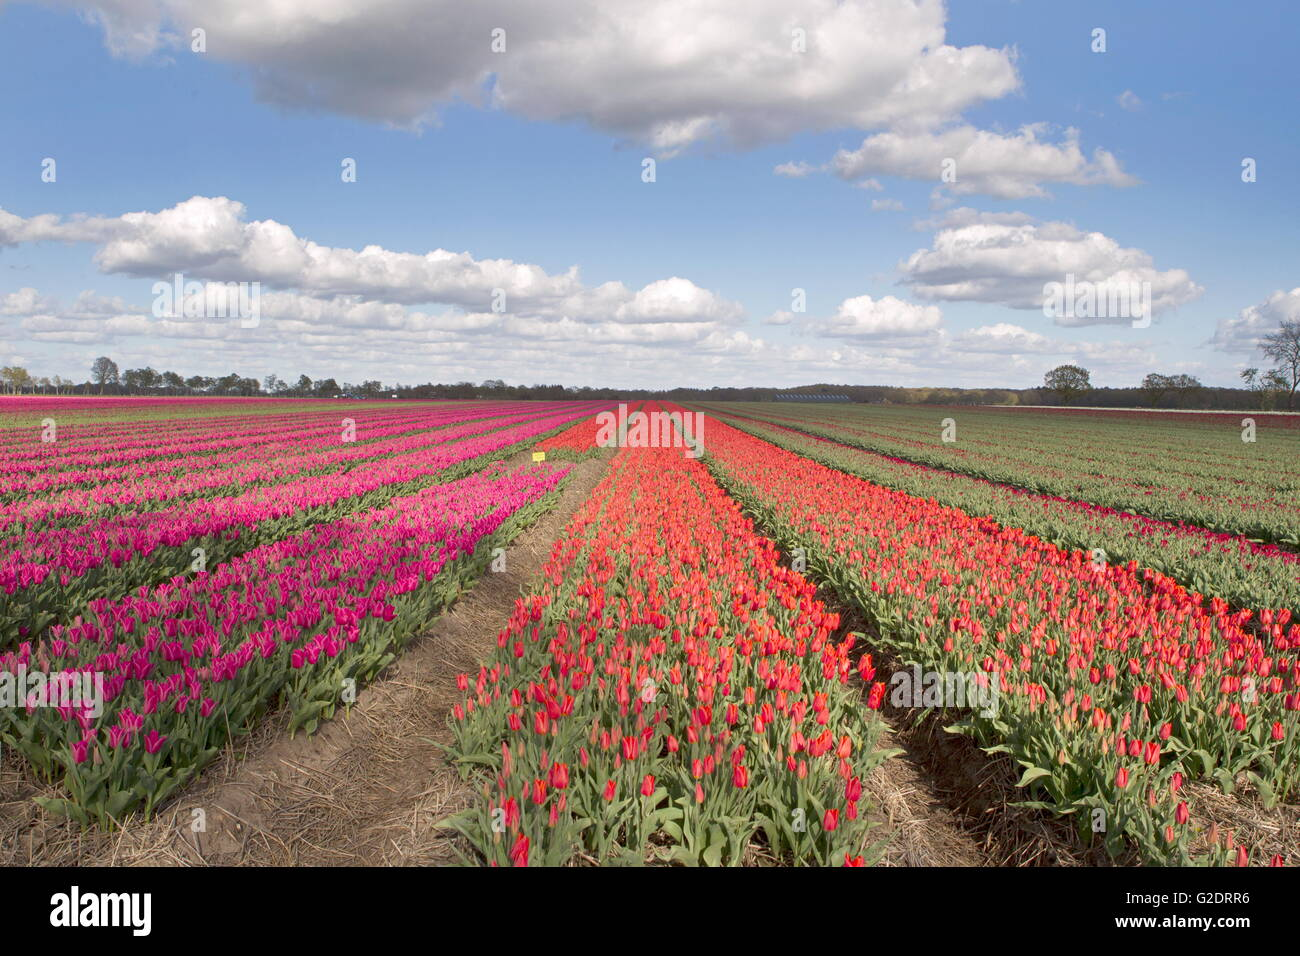 Tulips from Holland - Stock Image